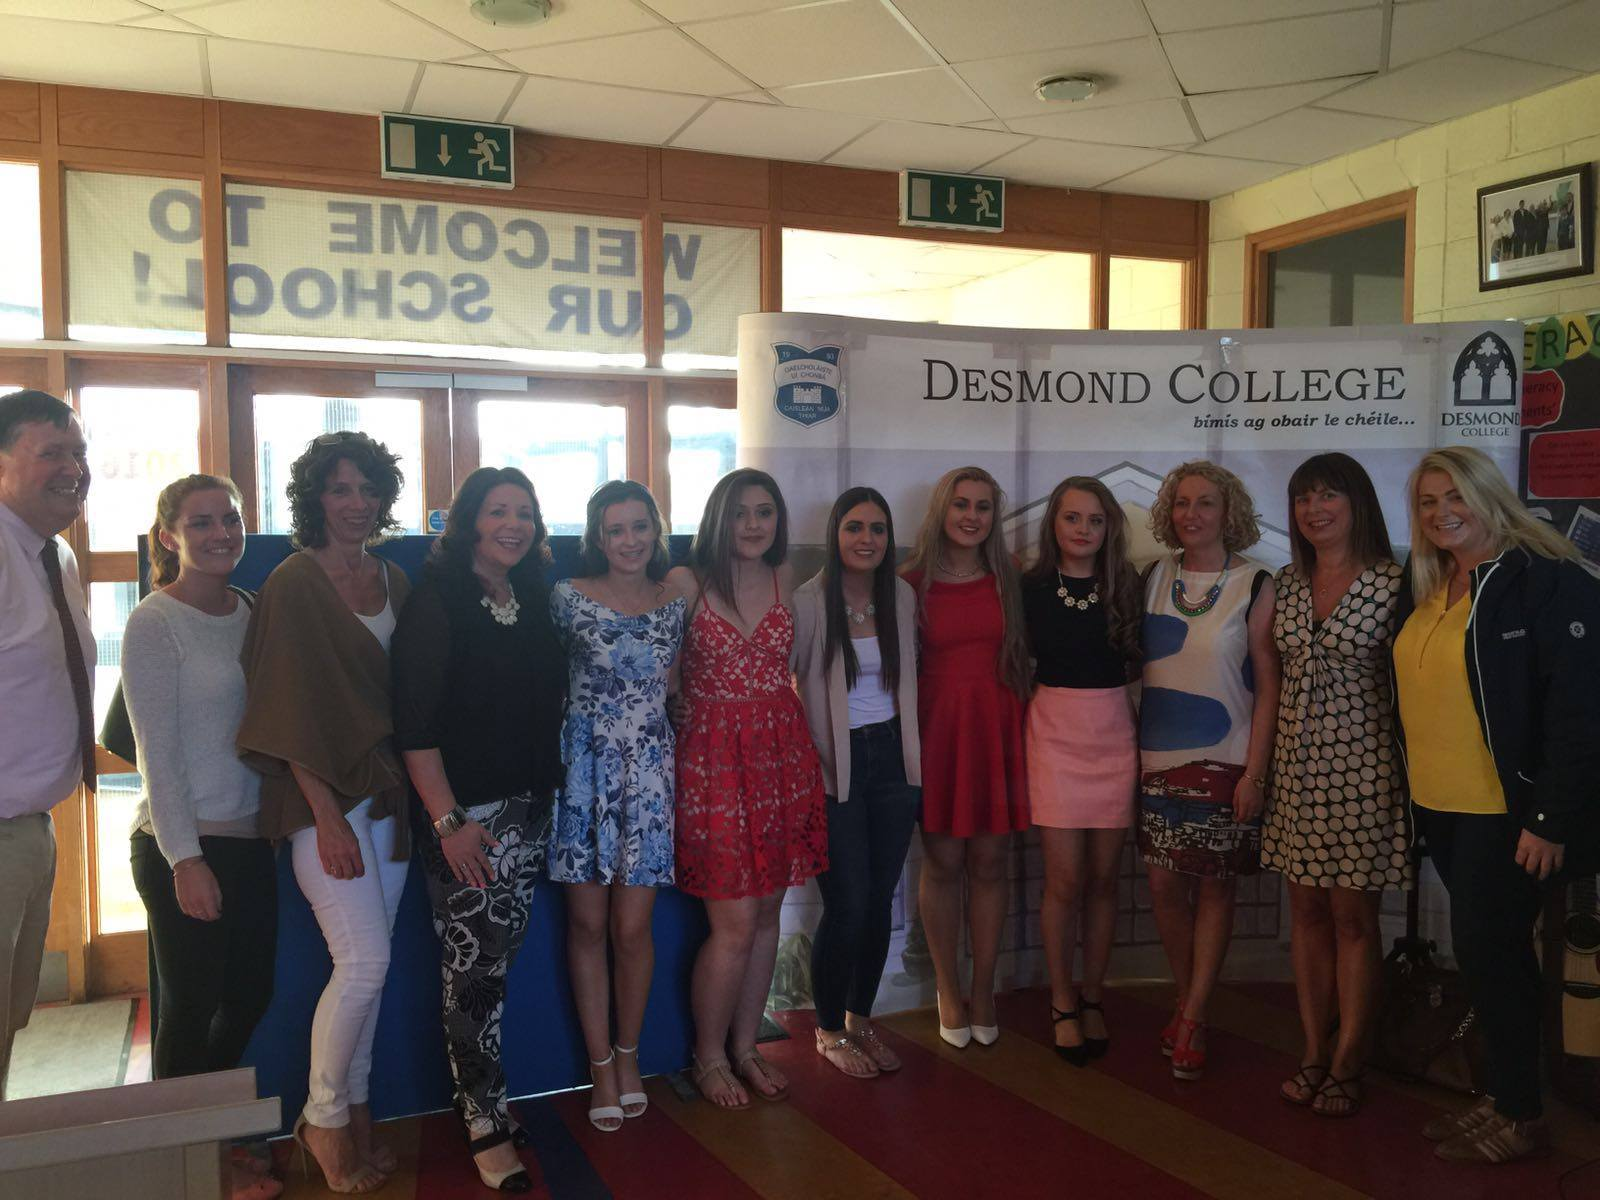 18th May 2016: Desmond College Transition Year Students of 2015-2016 at their Graduation Ceremony where they celebrated the year and also received awards